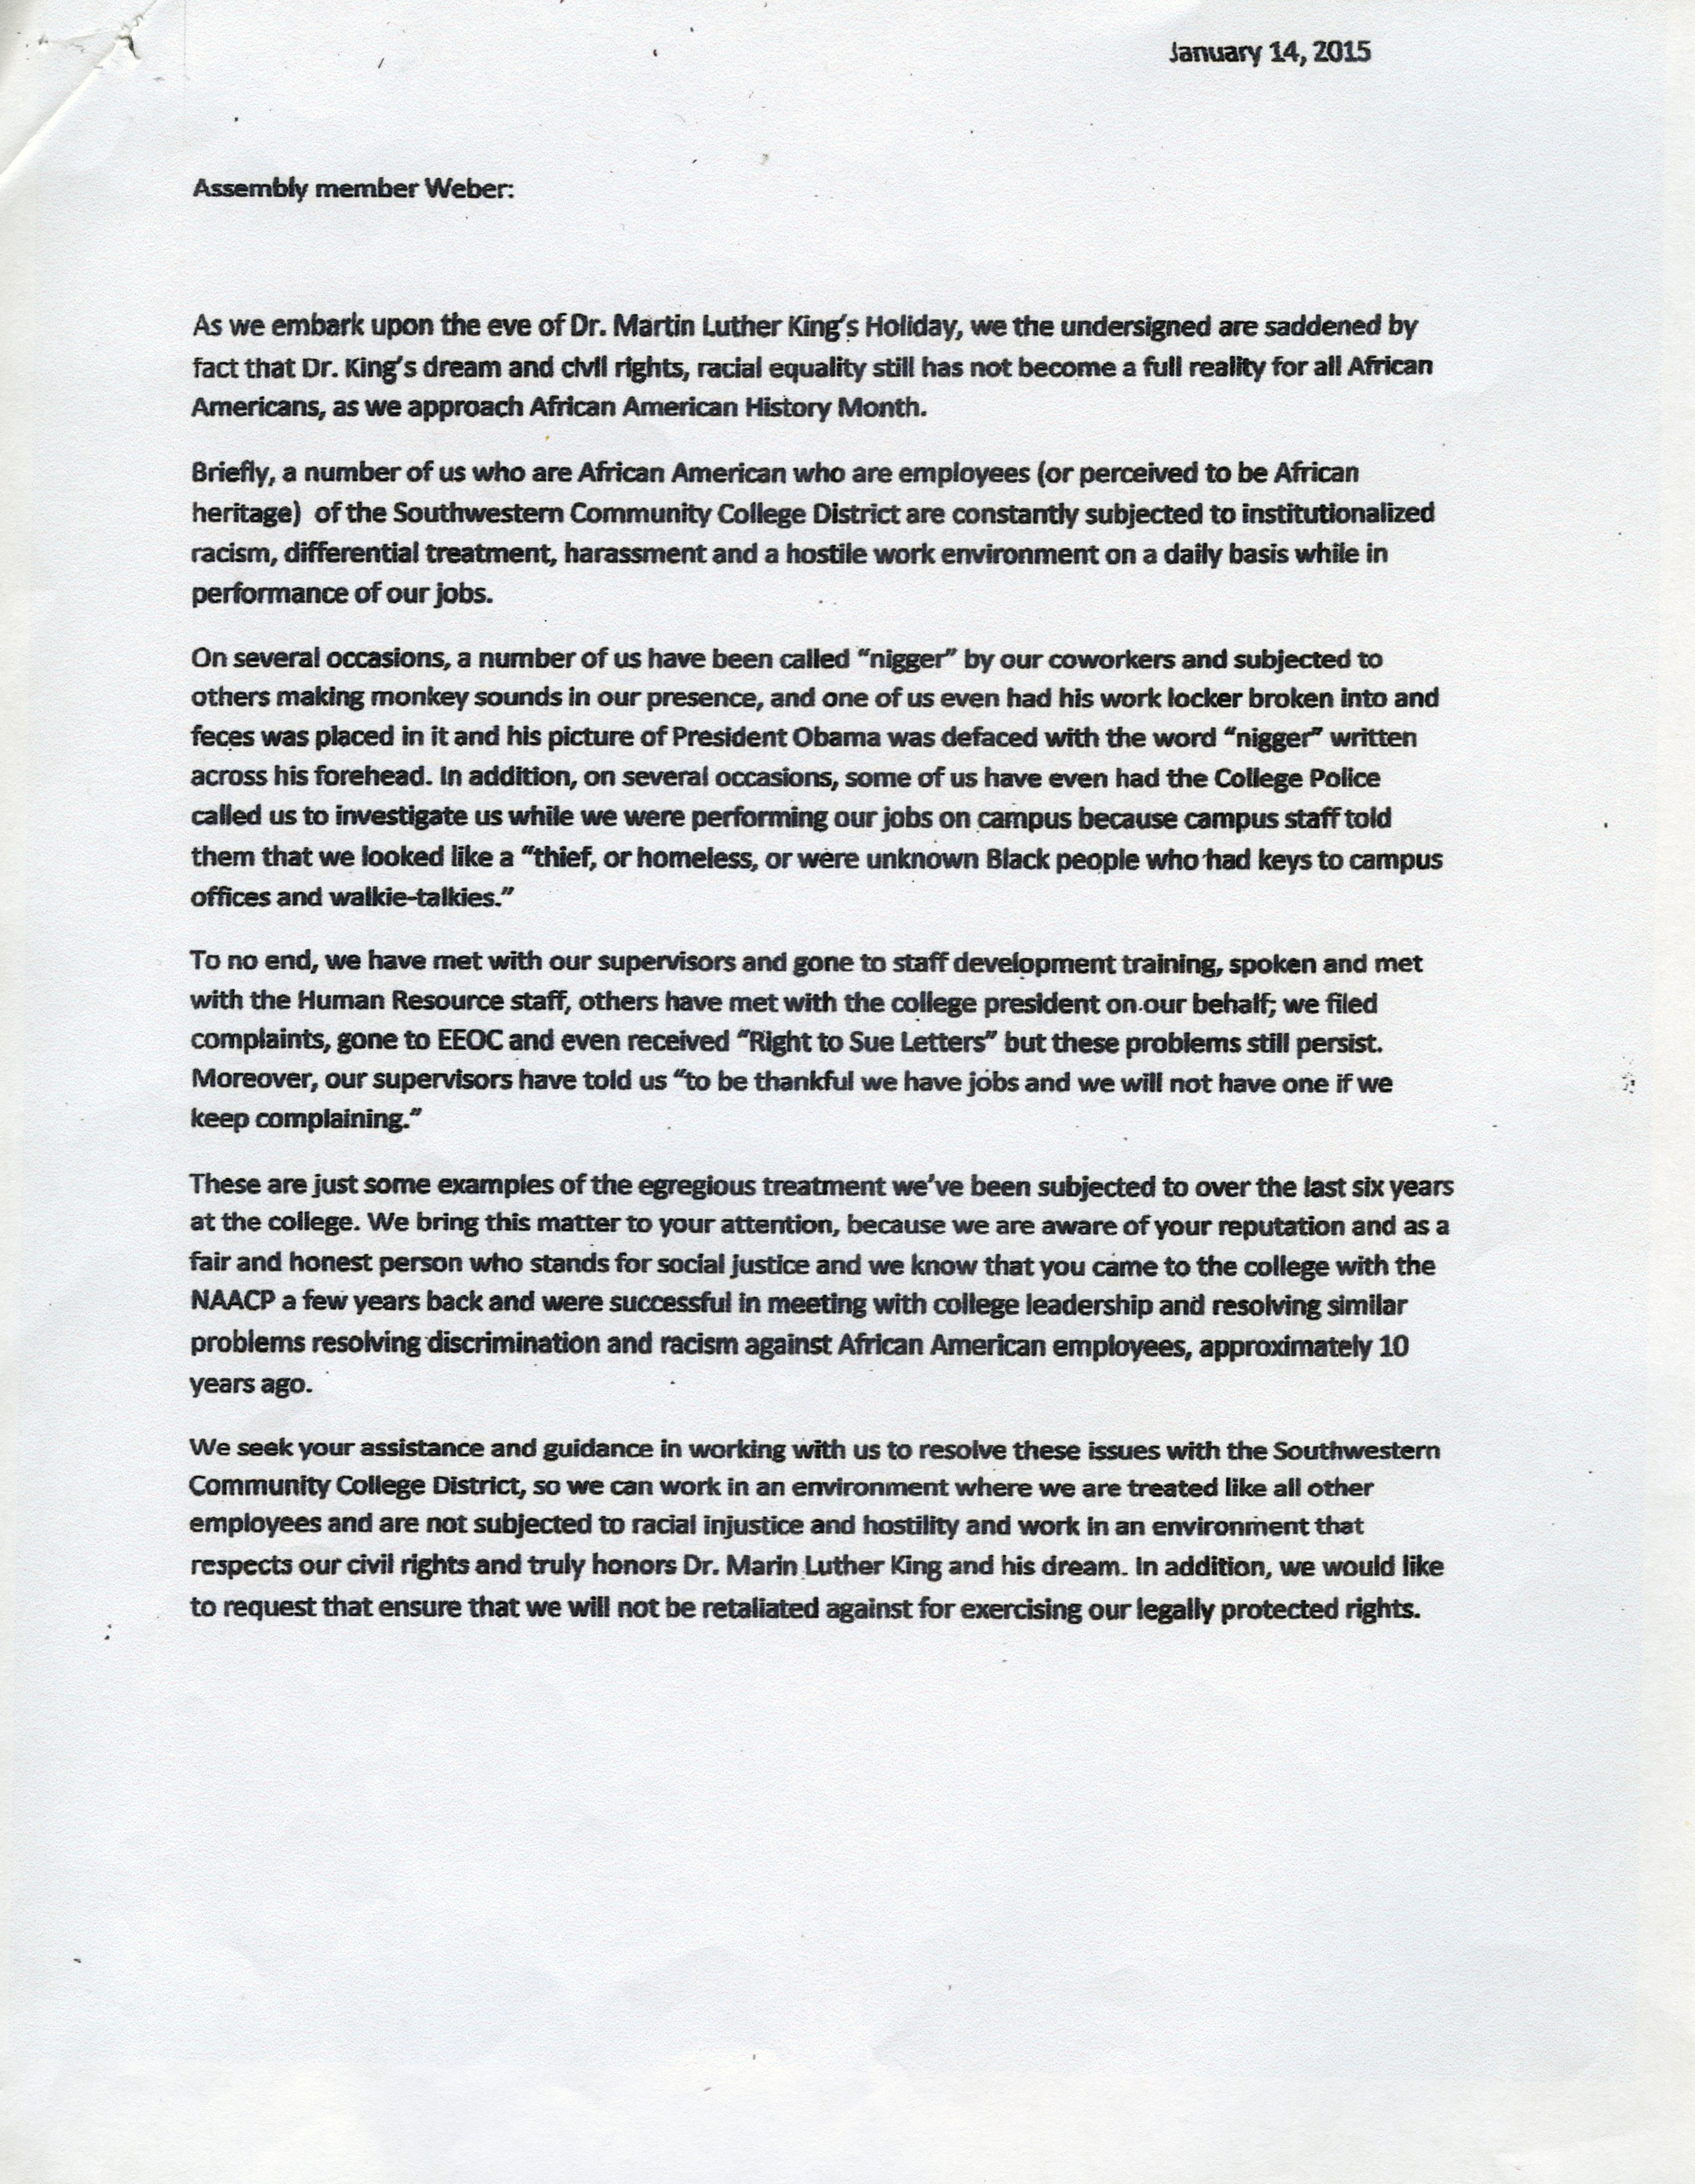 Sample Discrimination Complaint Letter Employees Accuse College Of Racism Discrimination In